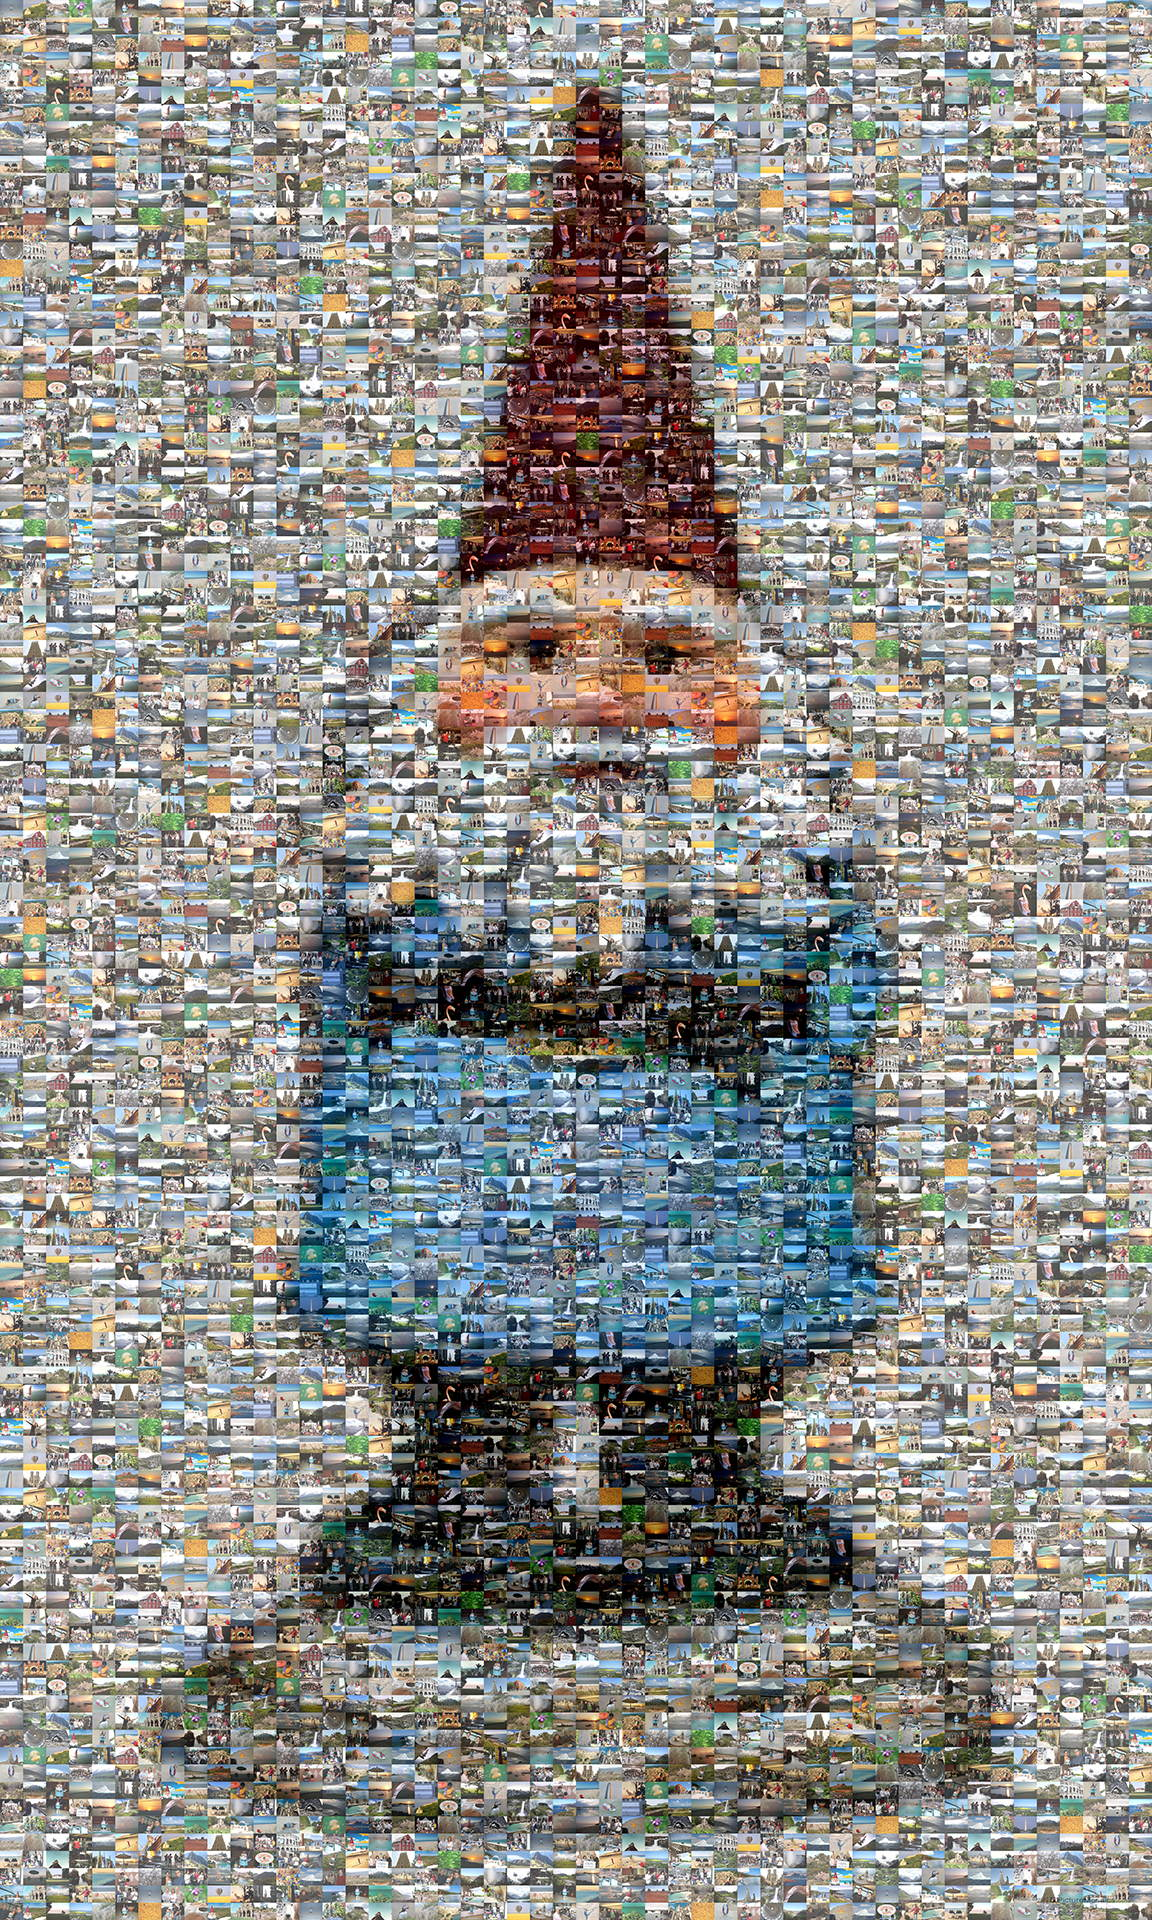 photo mosaic created using 182 customer submitted vacation photos